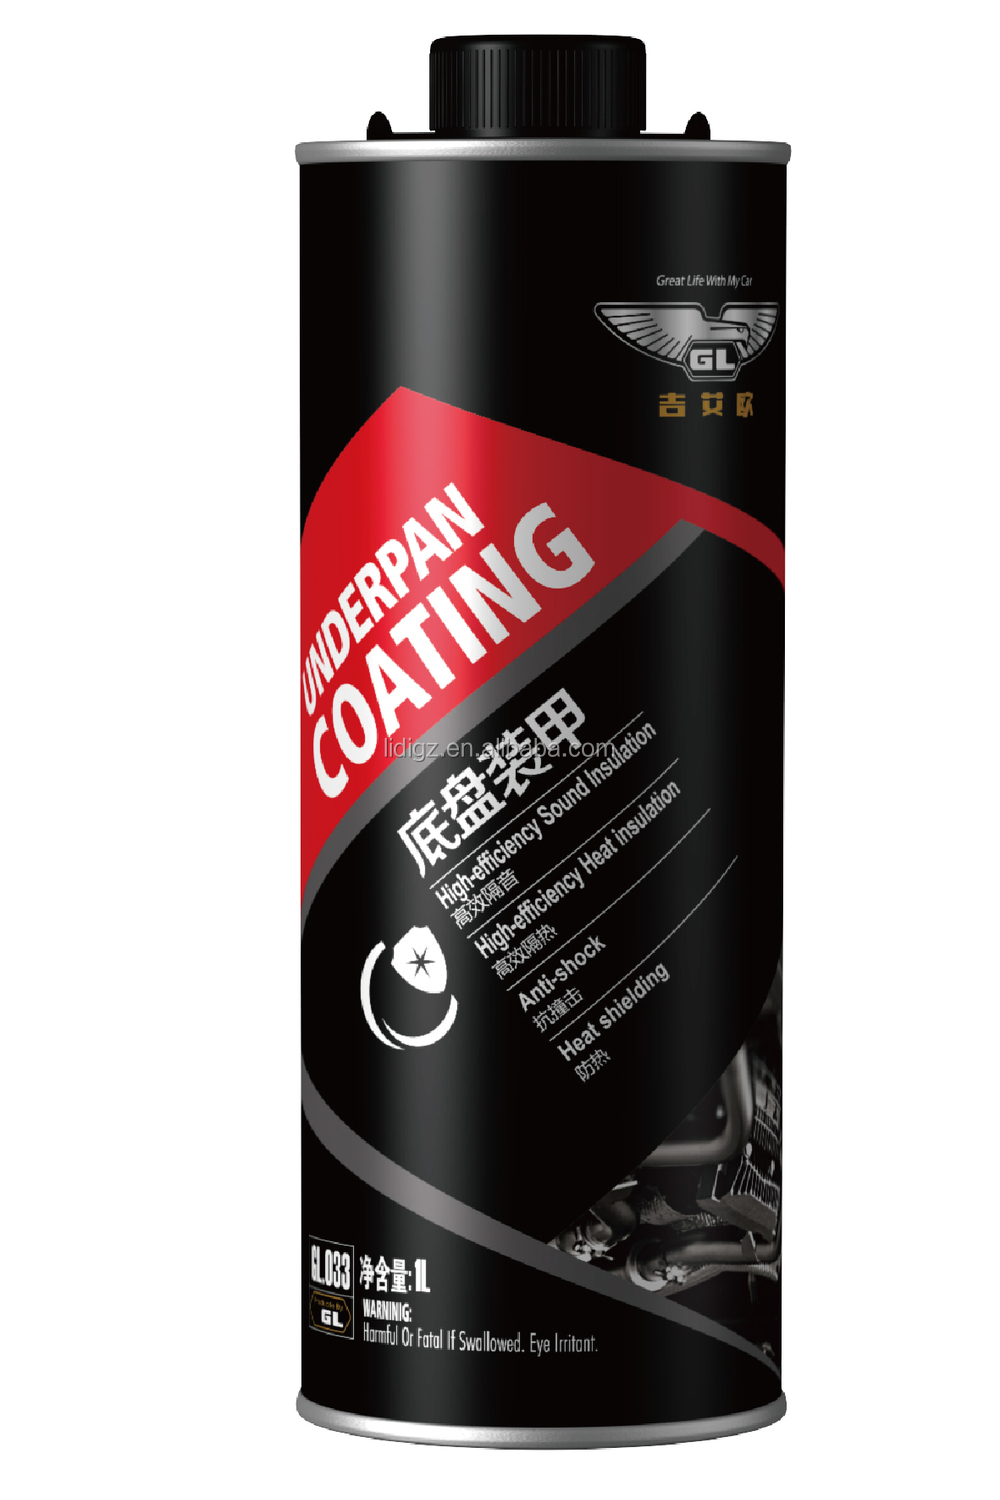 Proffessional rubberized undercoating best undercoating for Undercoating with used motor oil